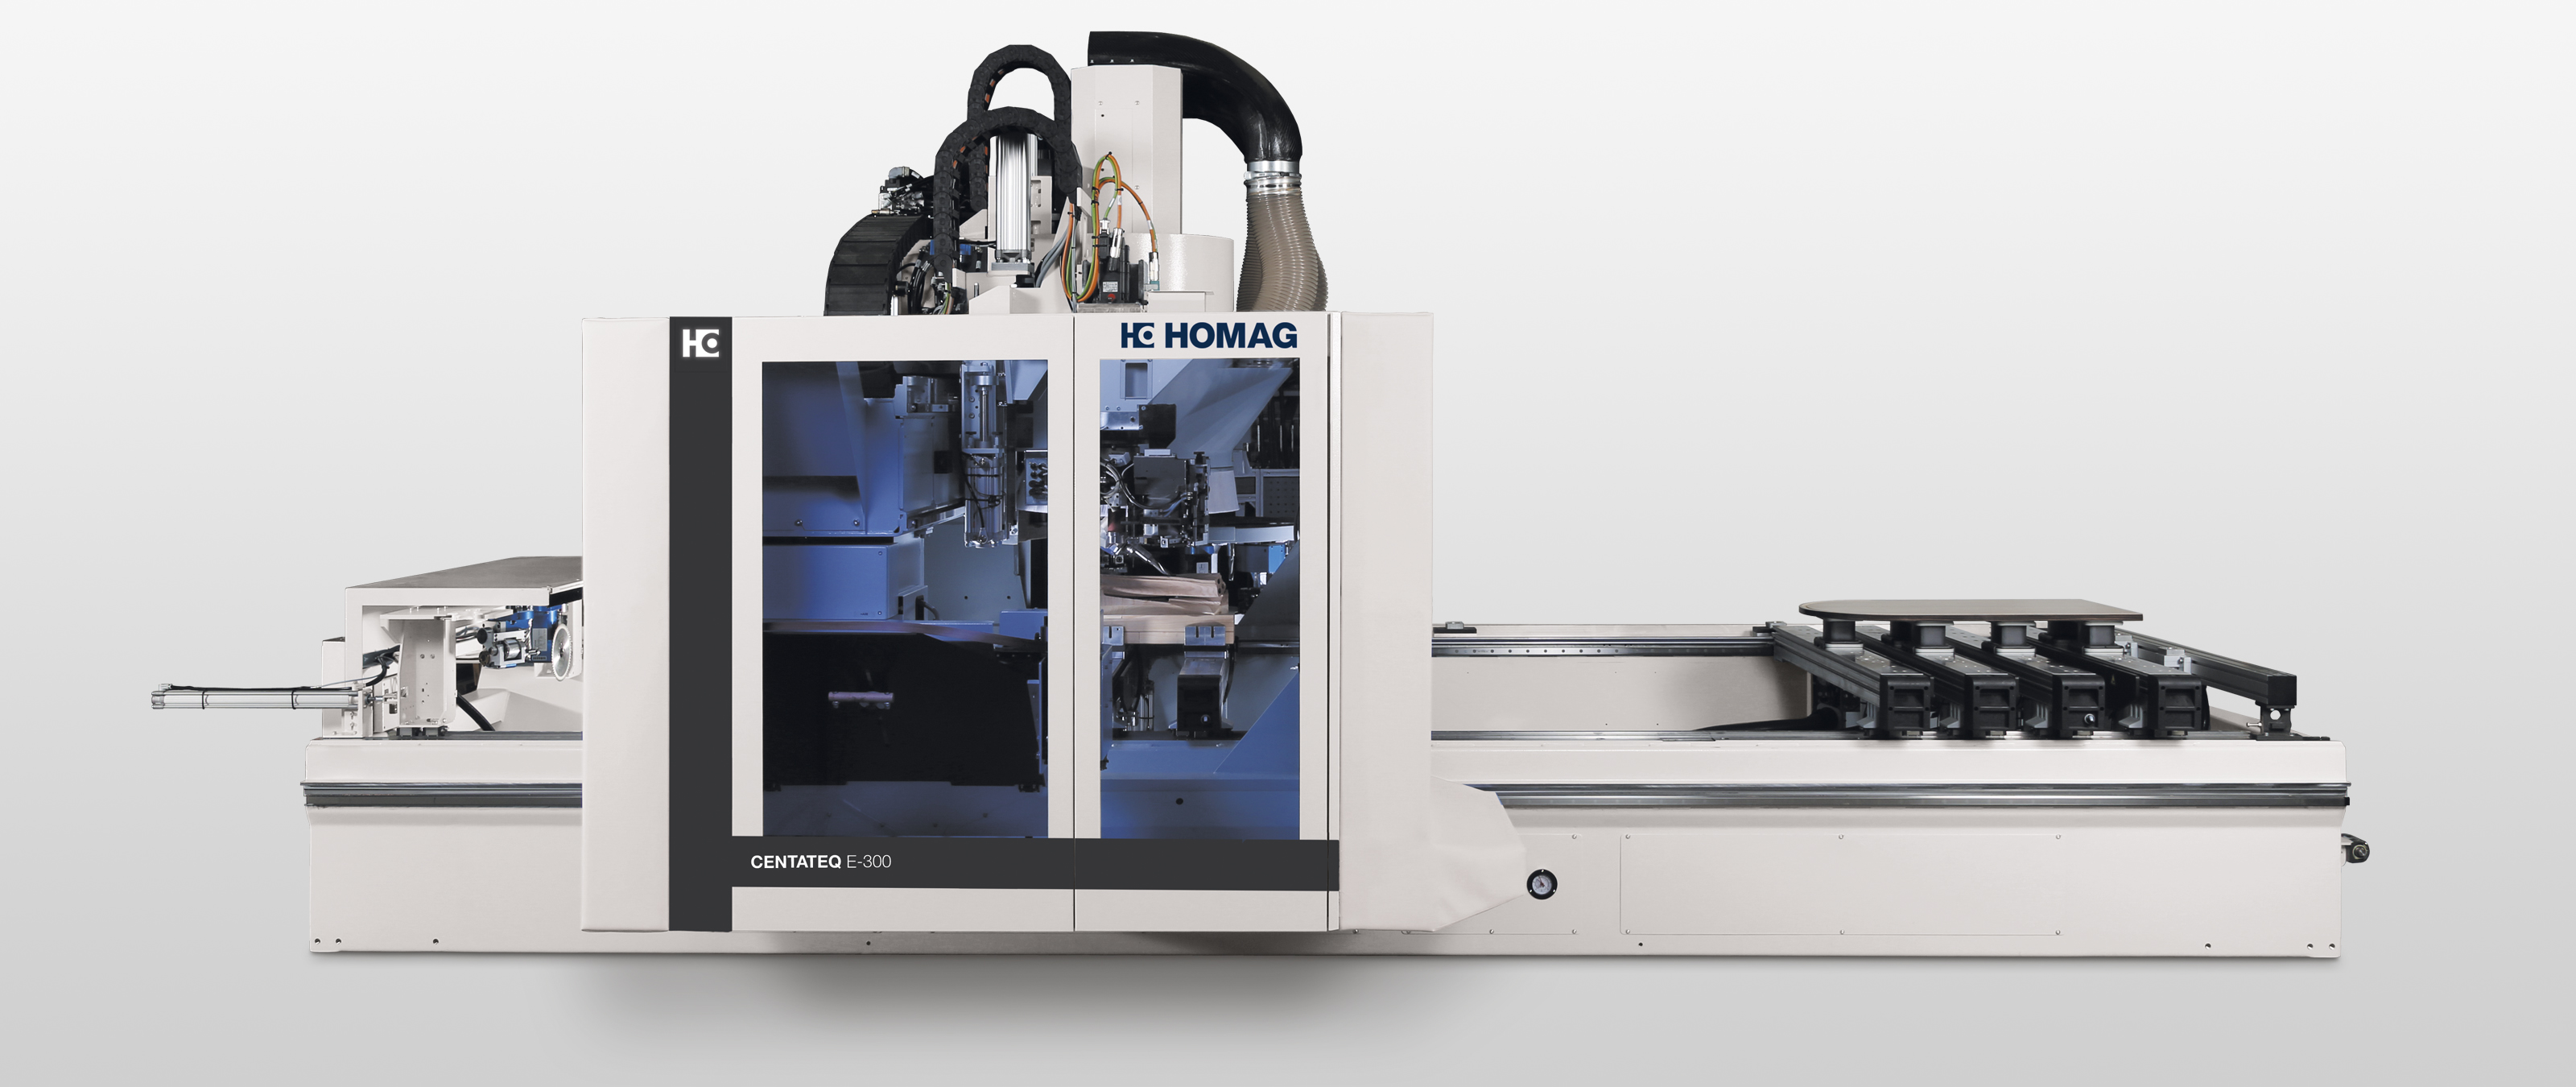 CNC processing center CENTATEQ E-300 from HOMAG